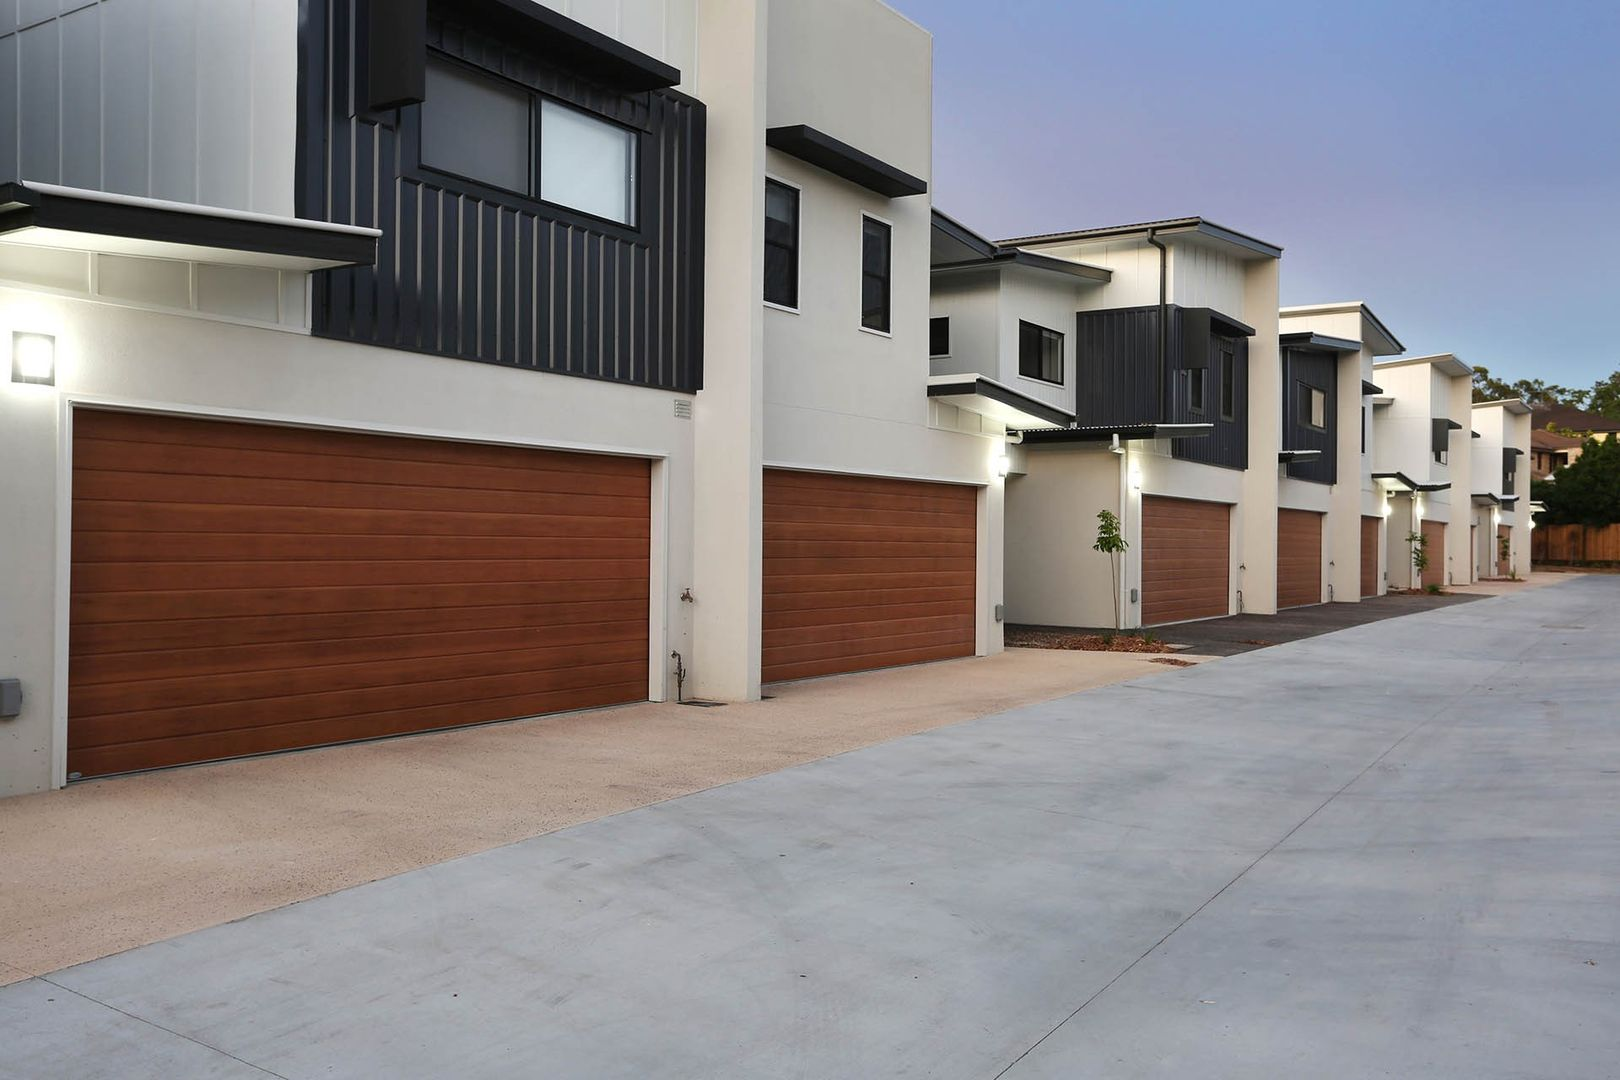 29/45 Boulting Street, Mcdowall QLD 4053, Image 2